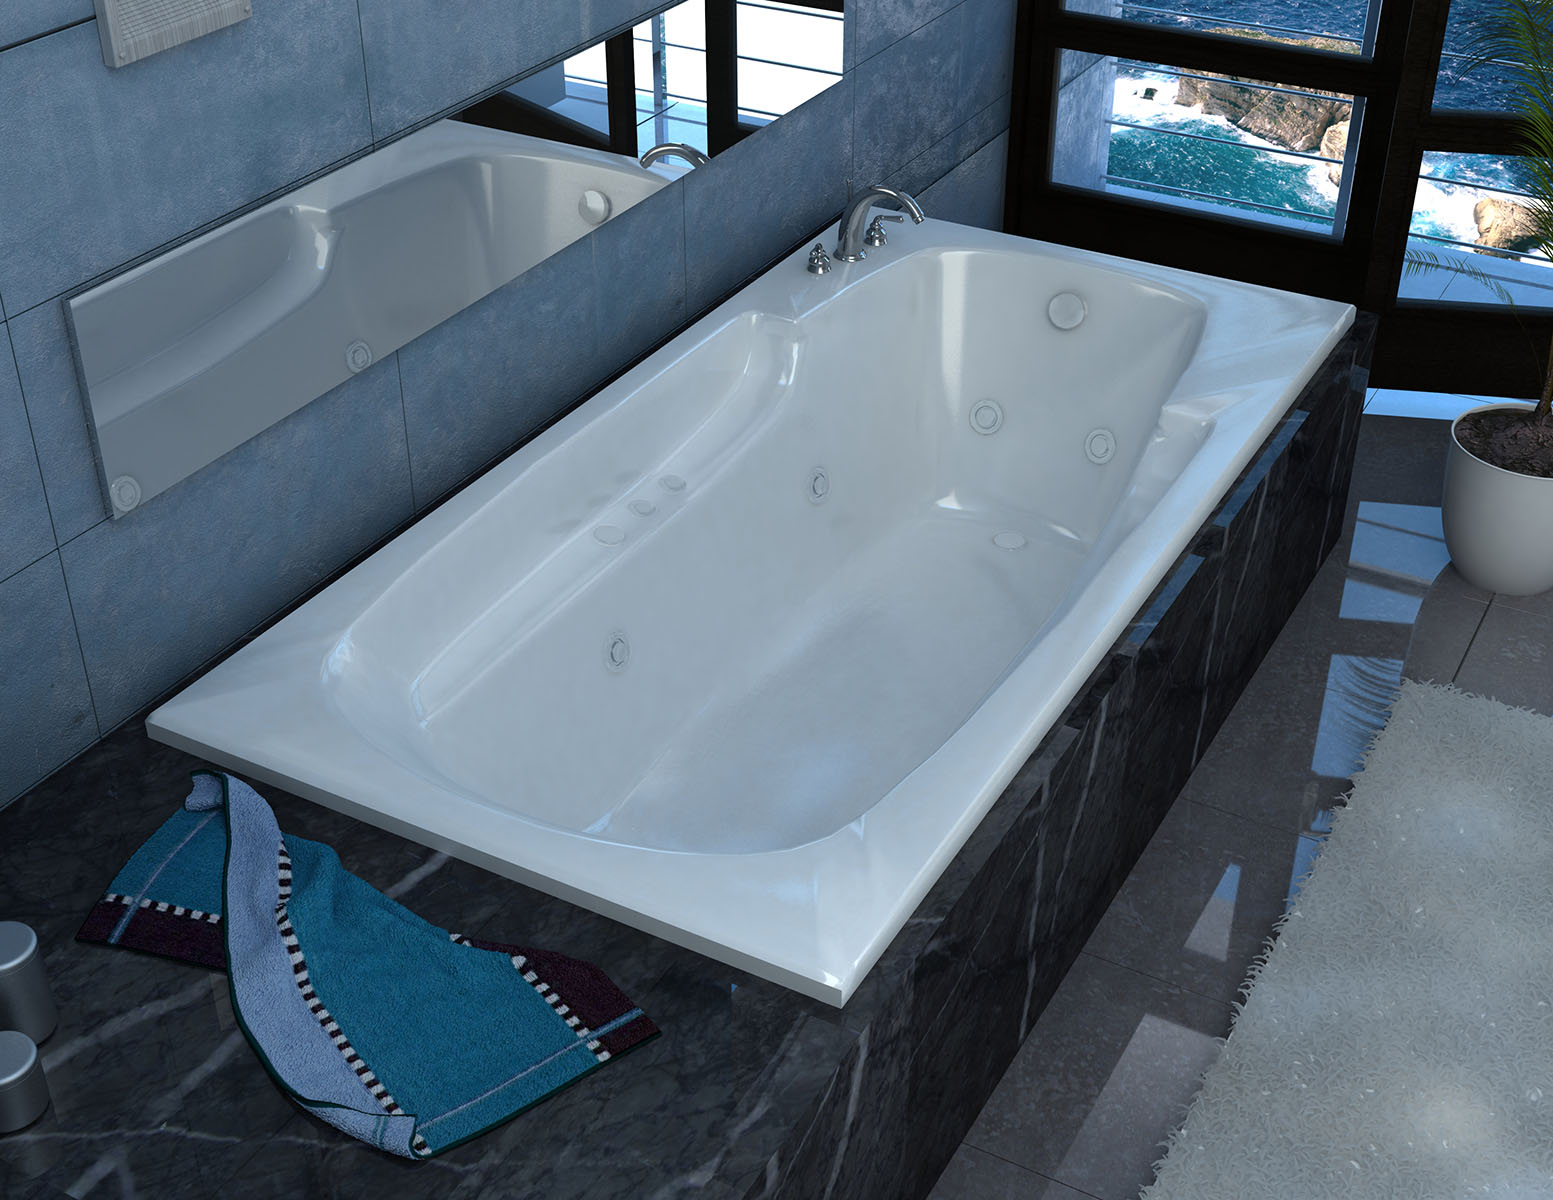 Aesis 36 x 72 Rectangular Whirlpool Jetted Bathtub